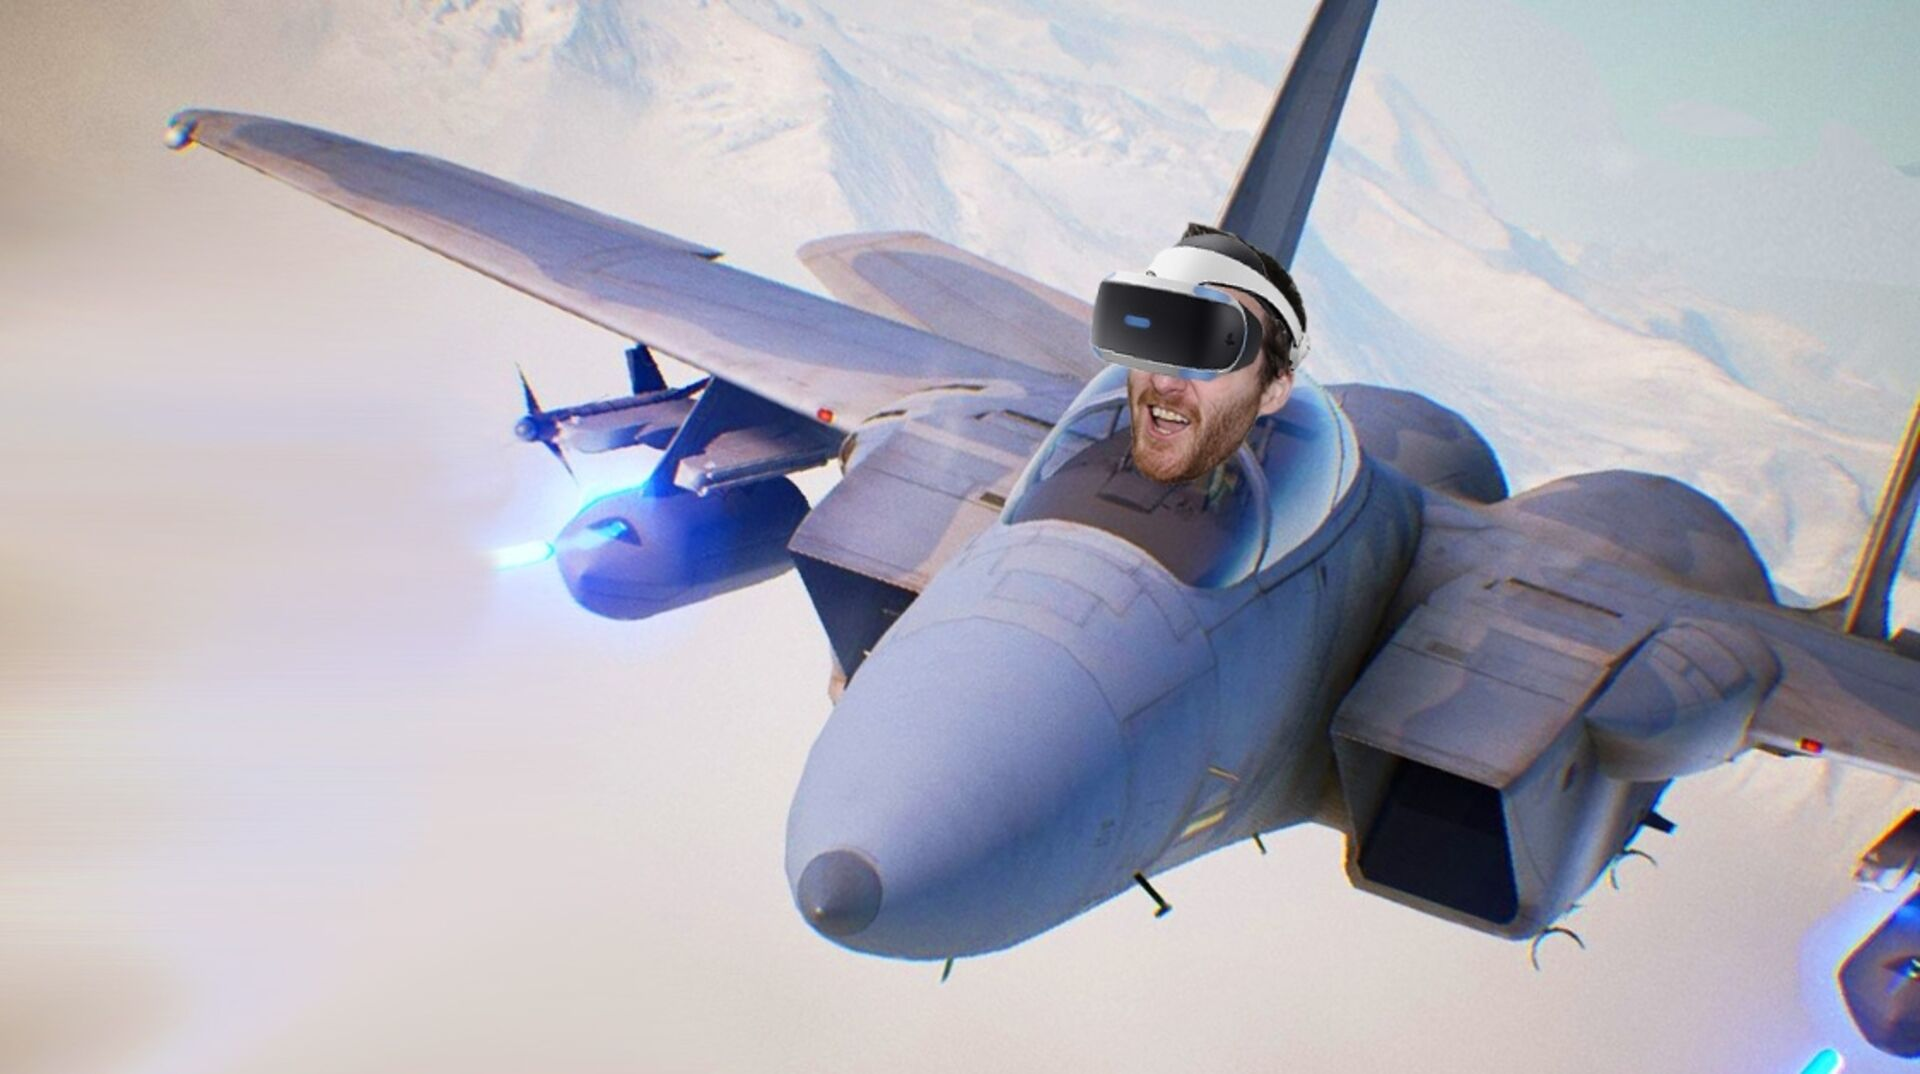 Ace Combat 7 in VR is phenomenal (if you have the stomach for it